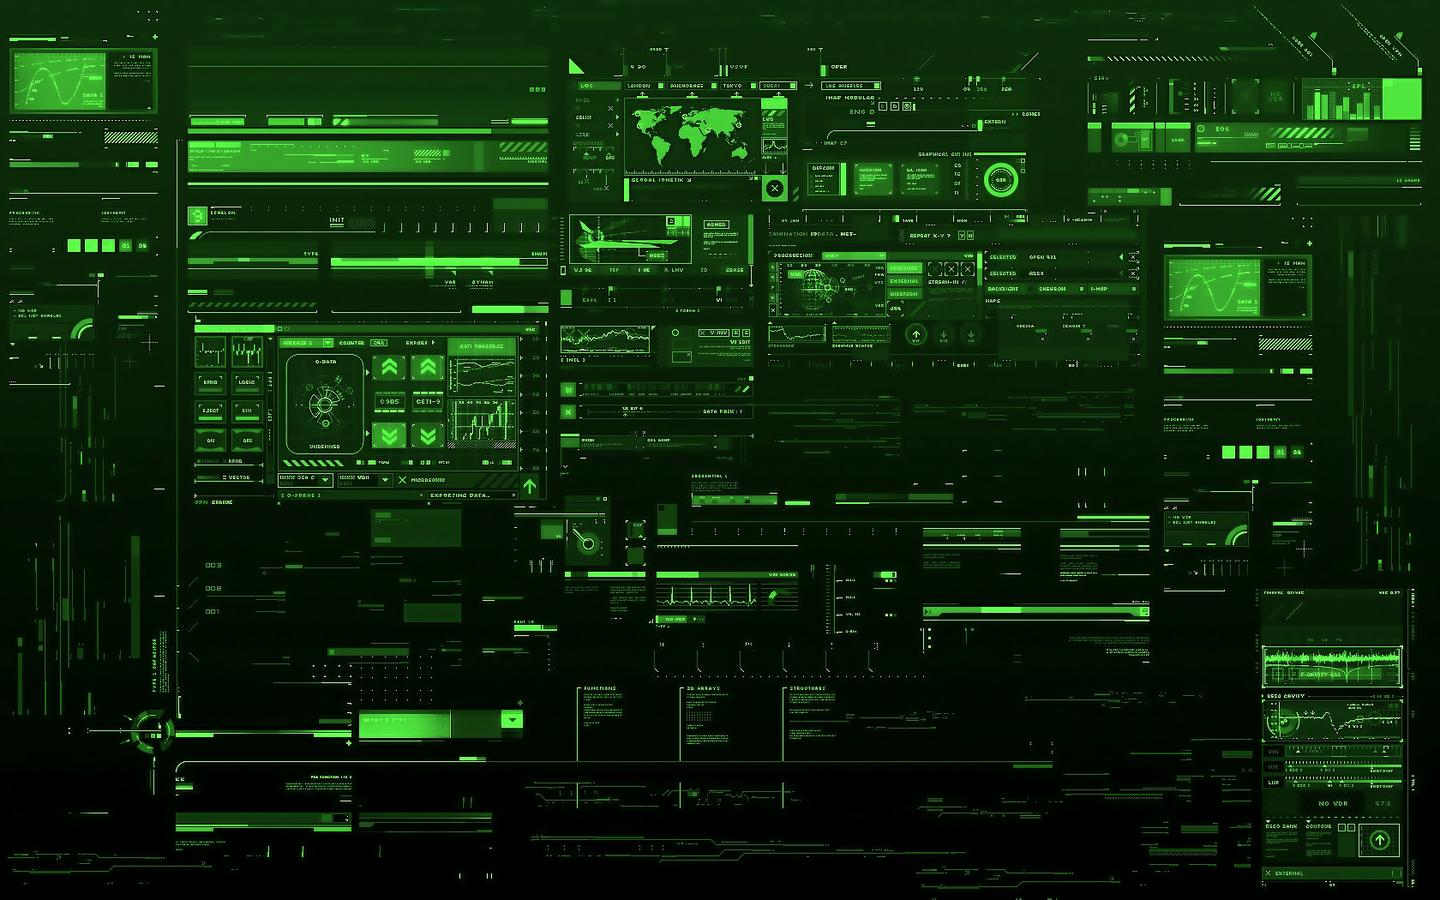 Green Technology Wallpaper: Car And Electronic Wallpaper